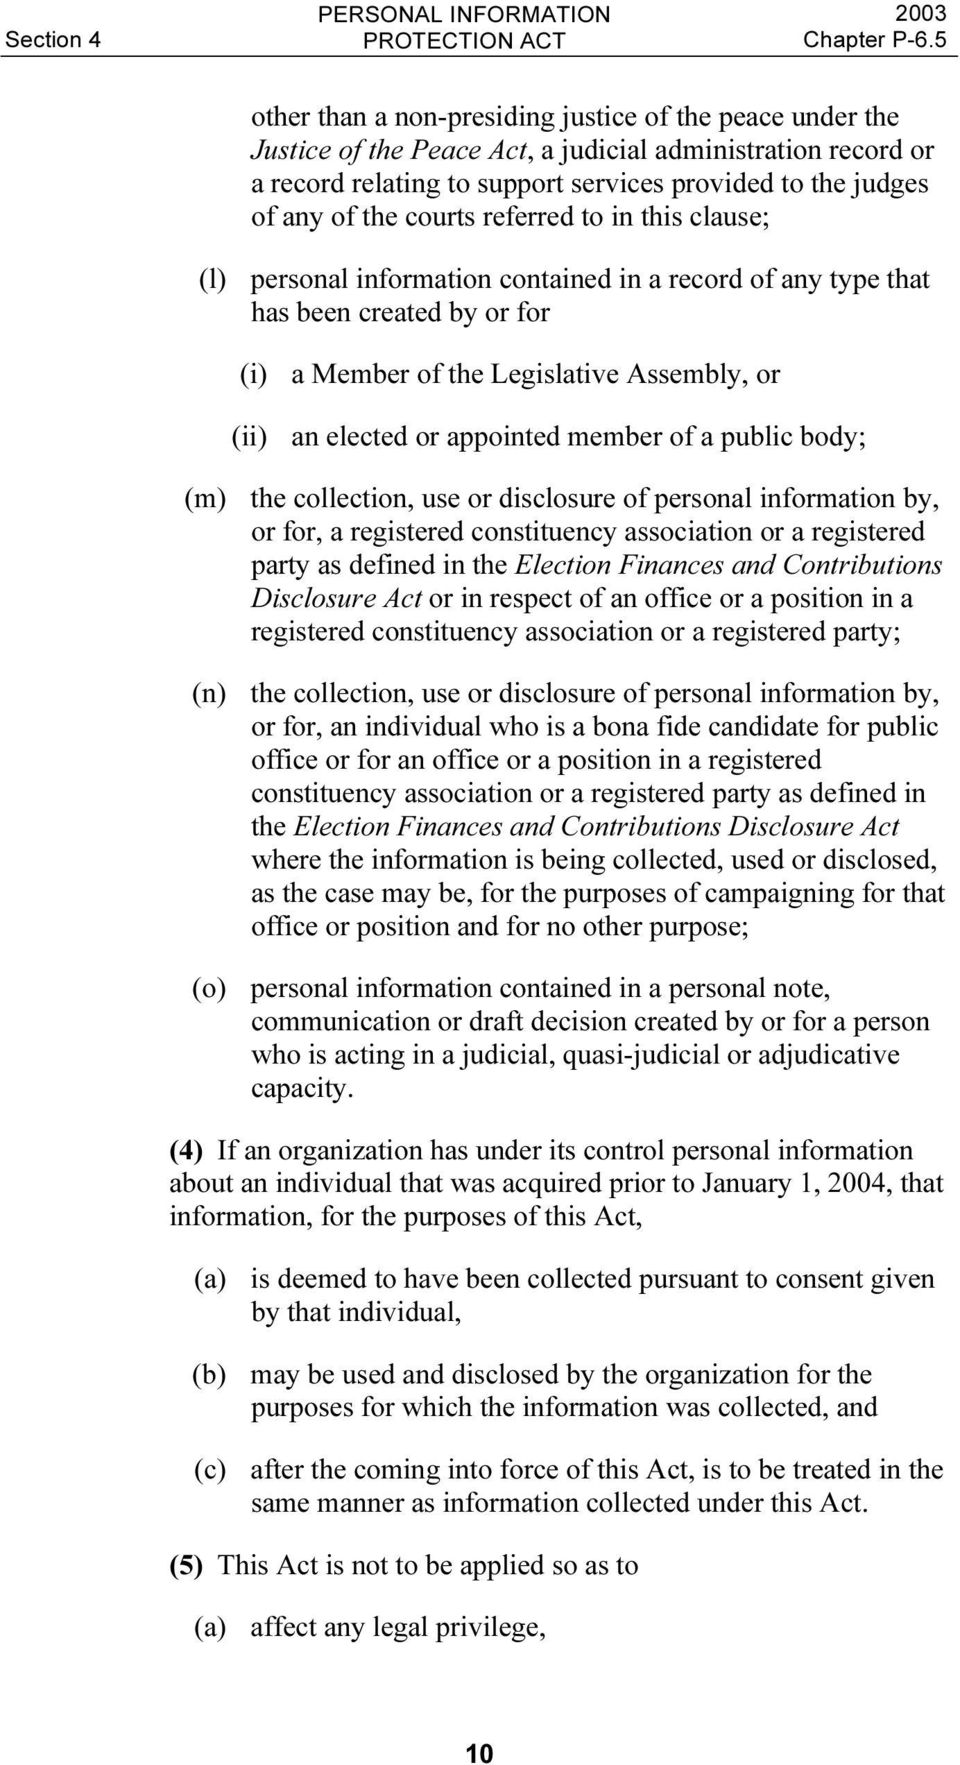 appointed member of a public body; (m) the collection, use or disclosure of personal information by, or for, a registered constituency association or a registered party as defined in the Election